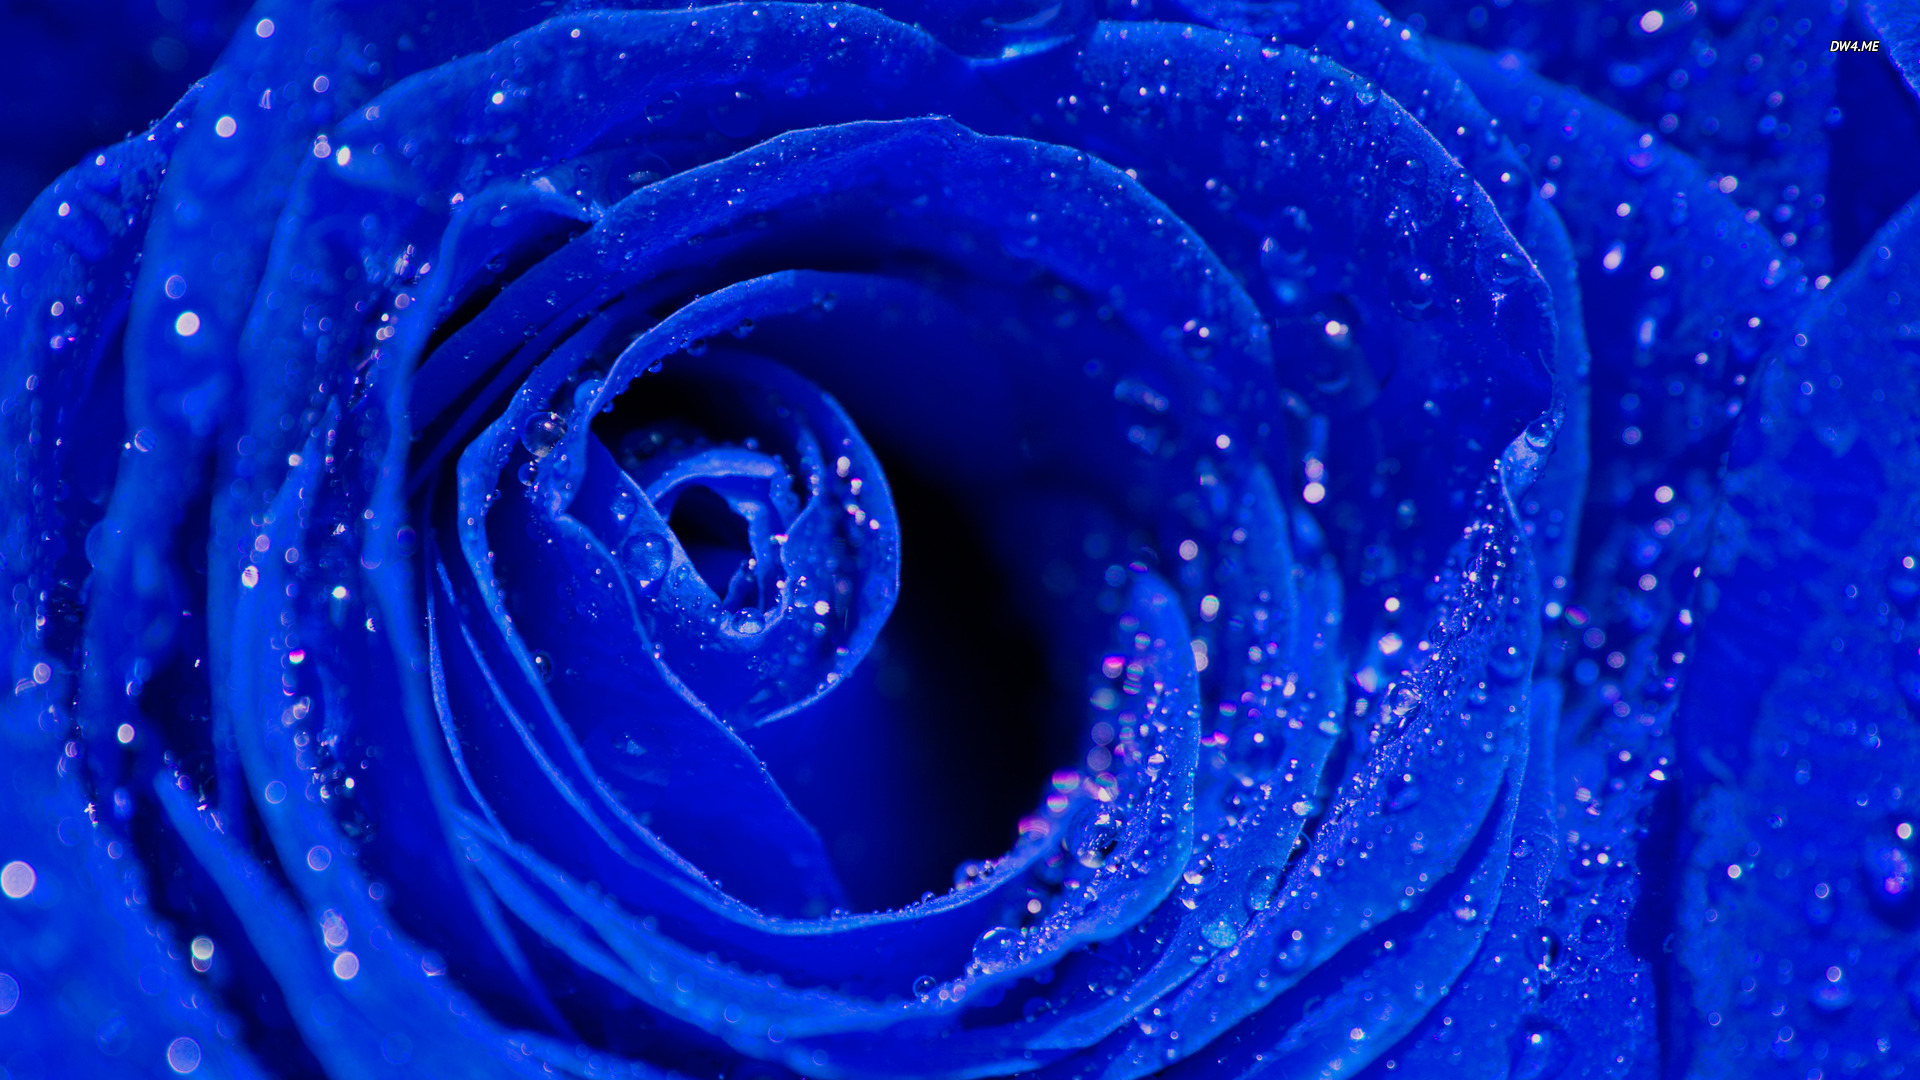 Blue Roses Background   Wallpaper High Definition High Quality 1920x1080